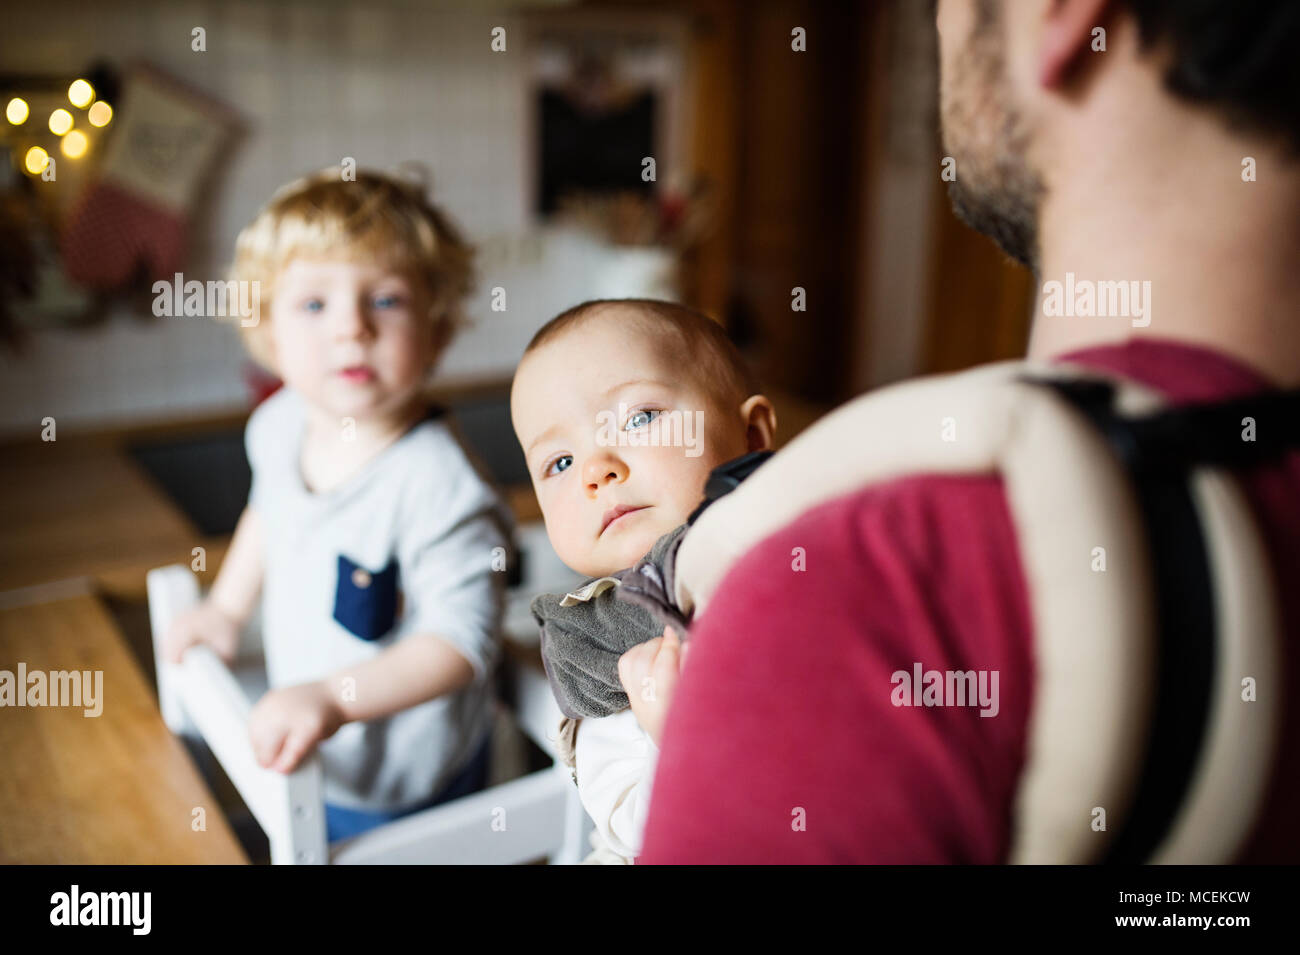 Father with two toddlers at home. - Stock Image